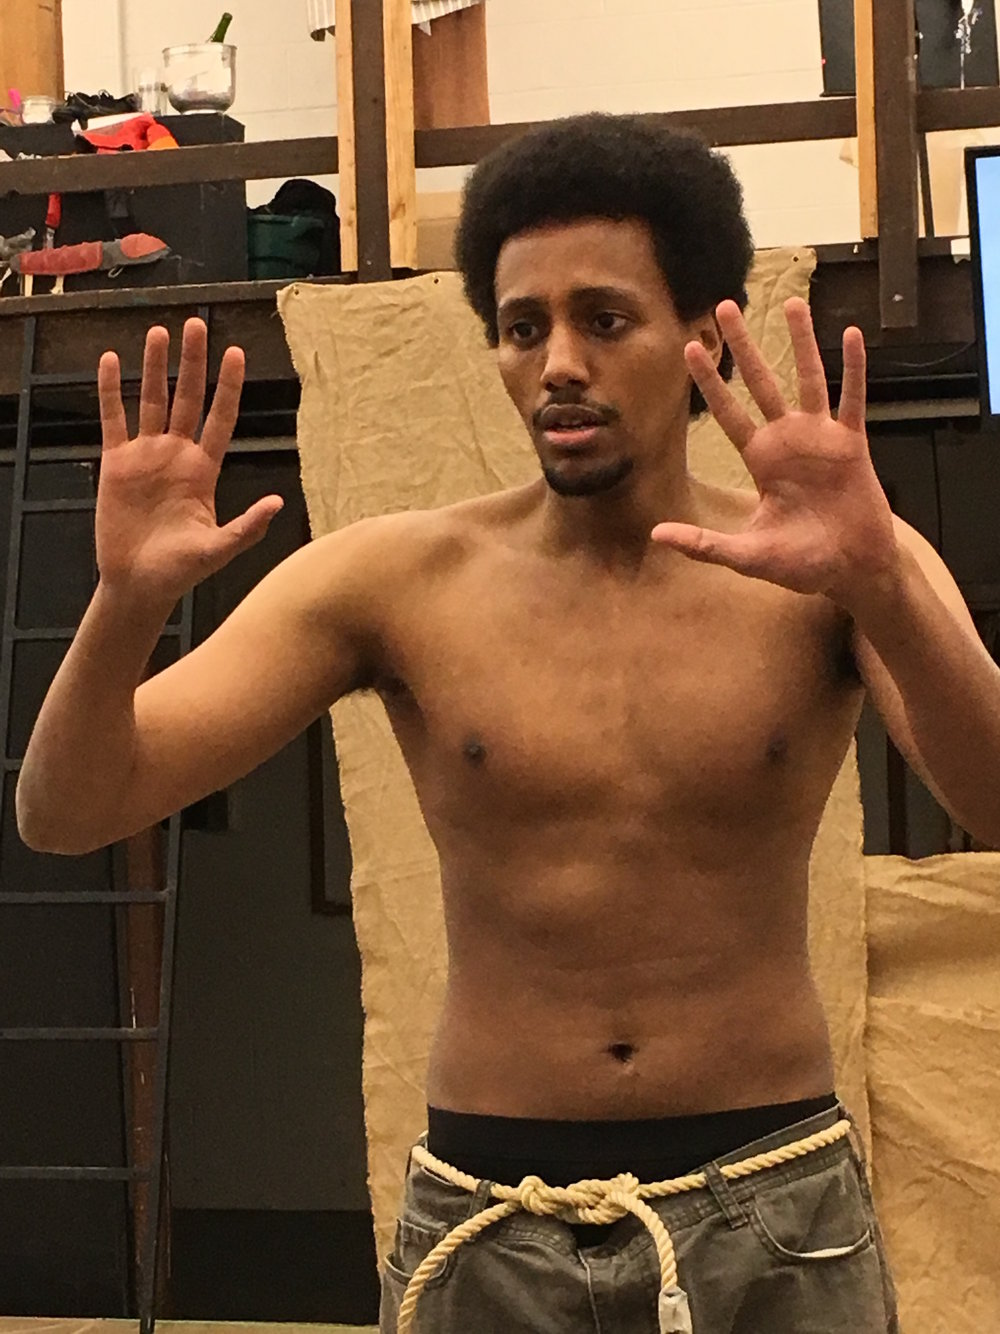 Sam Kebede puts his hands up pressing against an invisible wall, reminiscent of the hands up don't shoot pose and chant seen and heard in Ferguson, MO. (Matthew Gilbert/The Daily Campus)